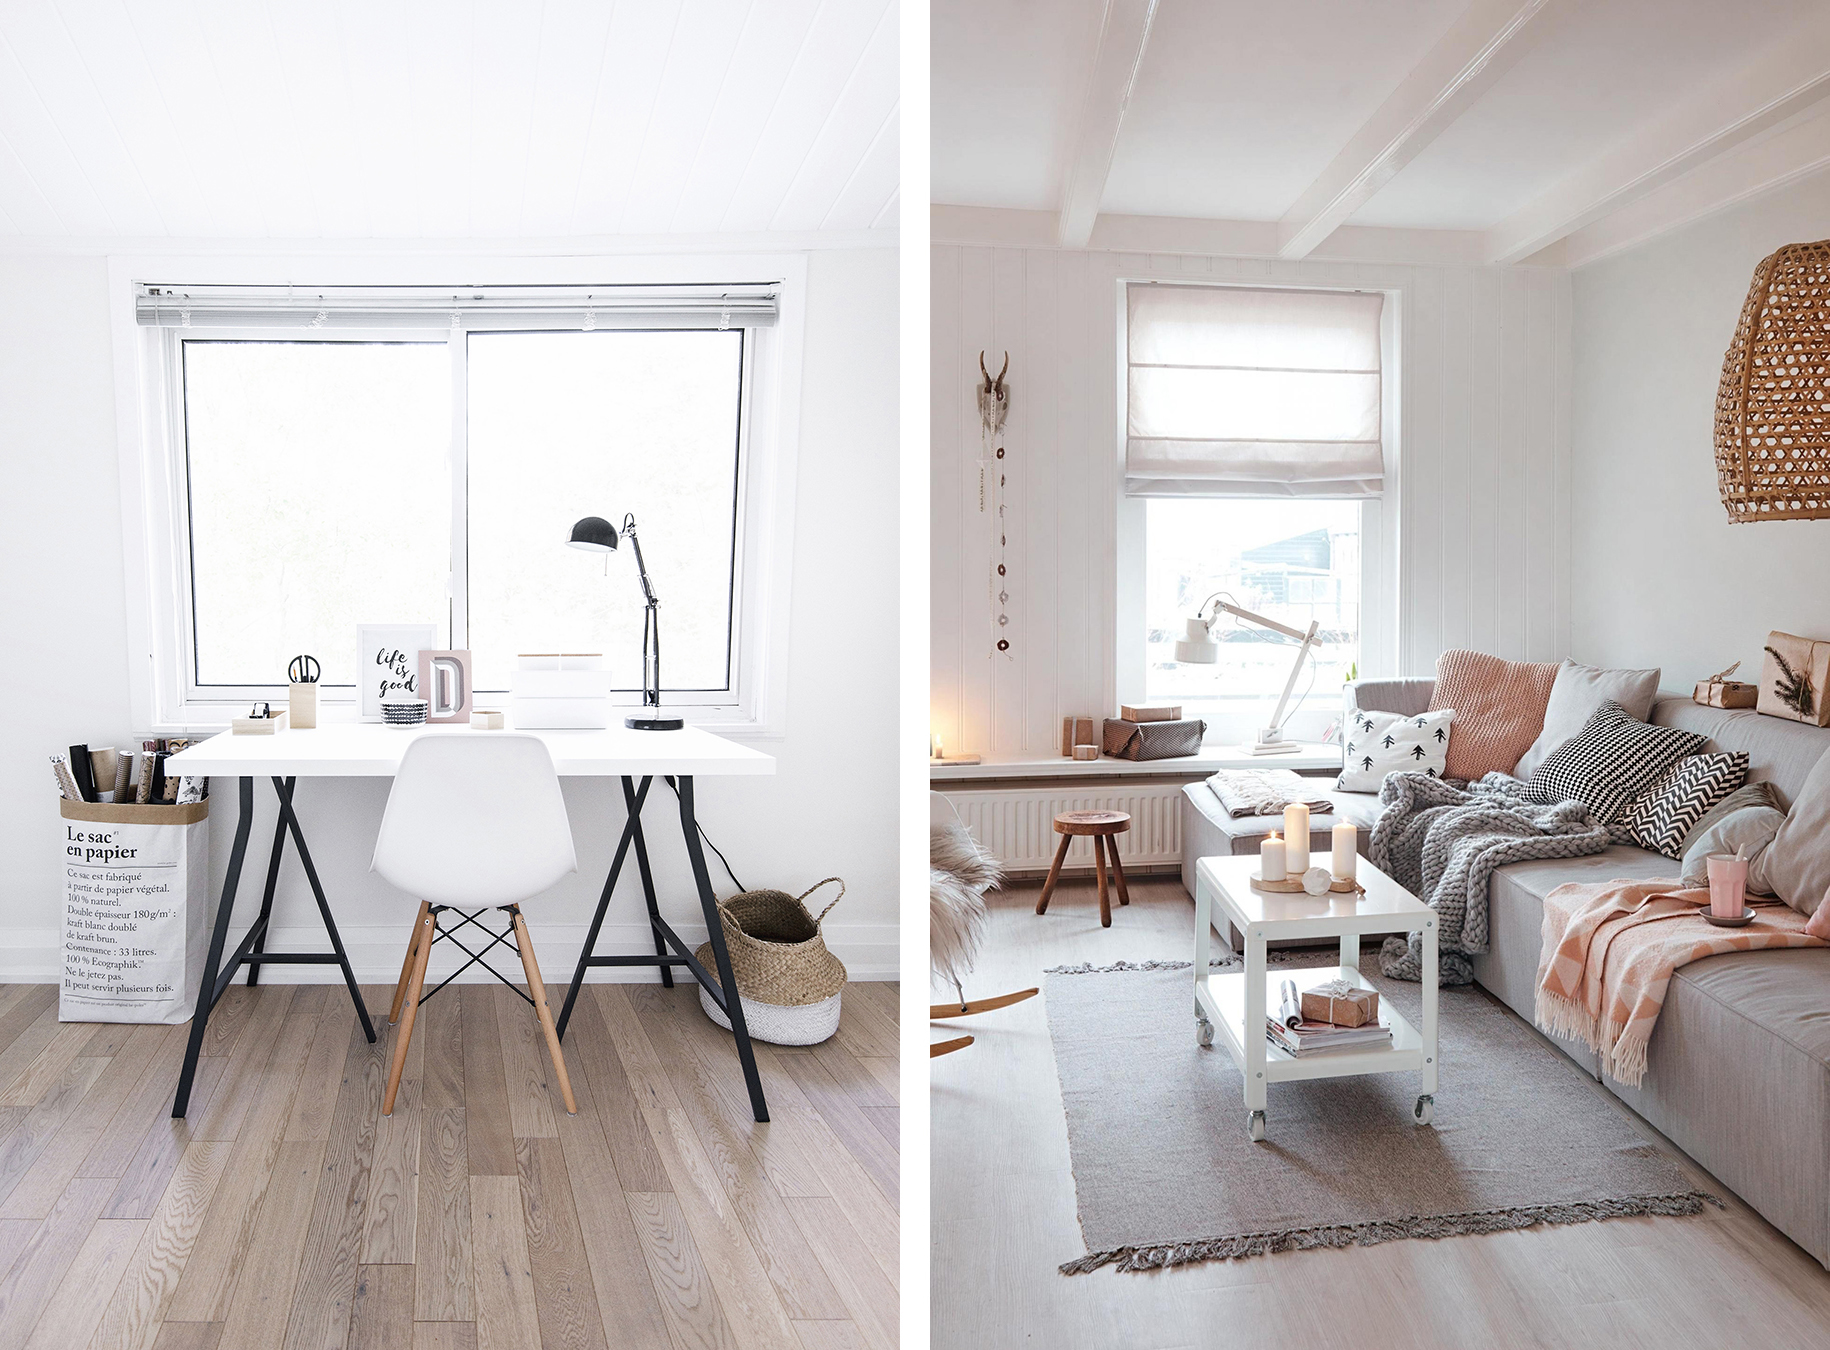 ... Scandinavian Interior With Neutral And Pastel Colors   Top 10 Tips For  Adding Scandinavian Style To